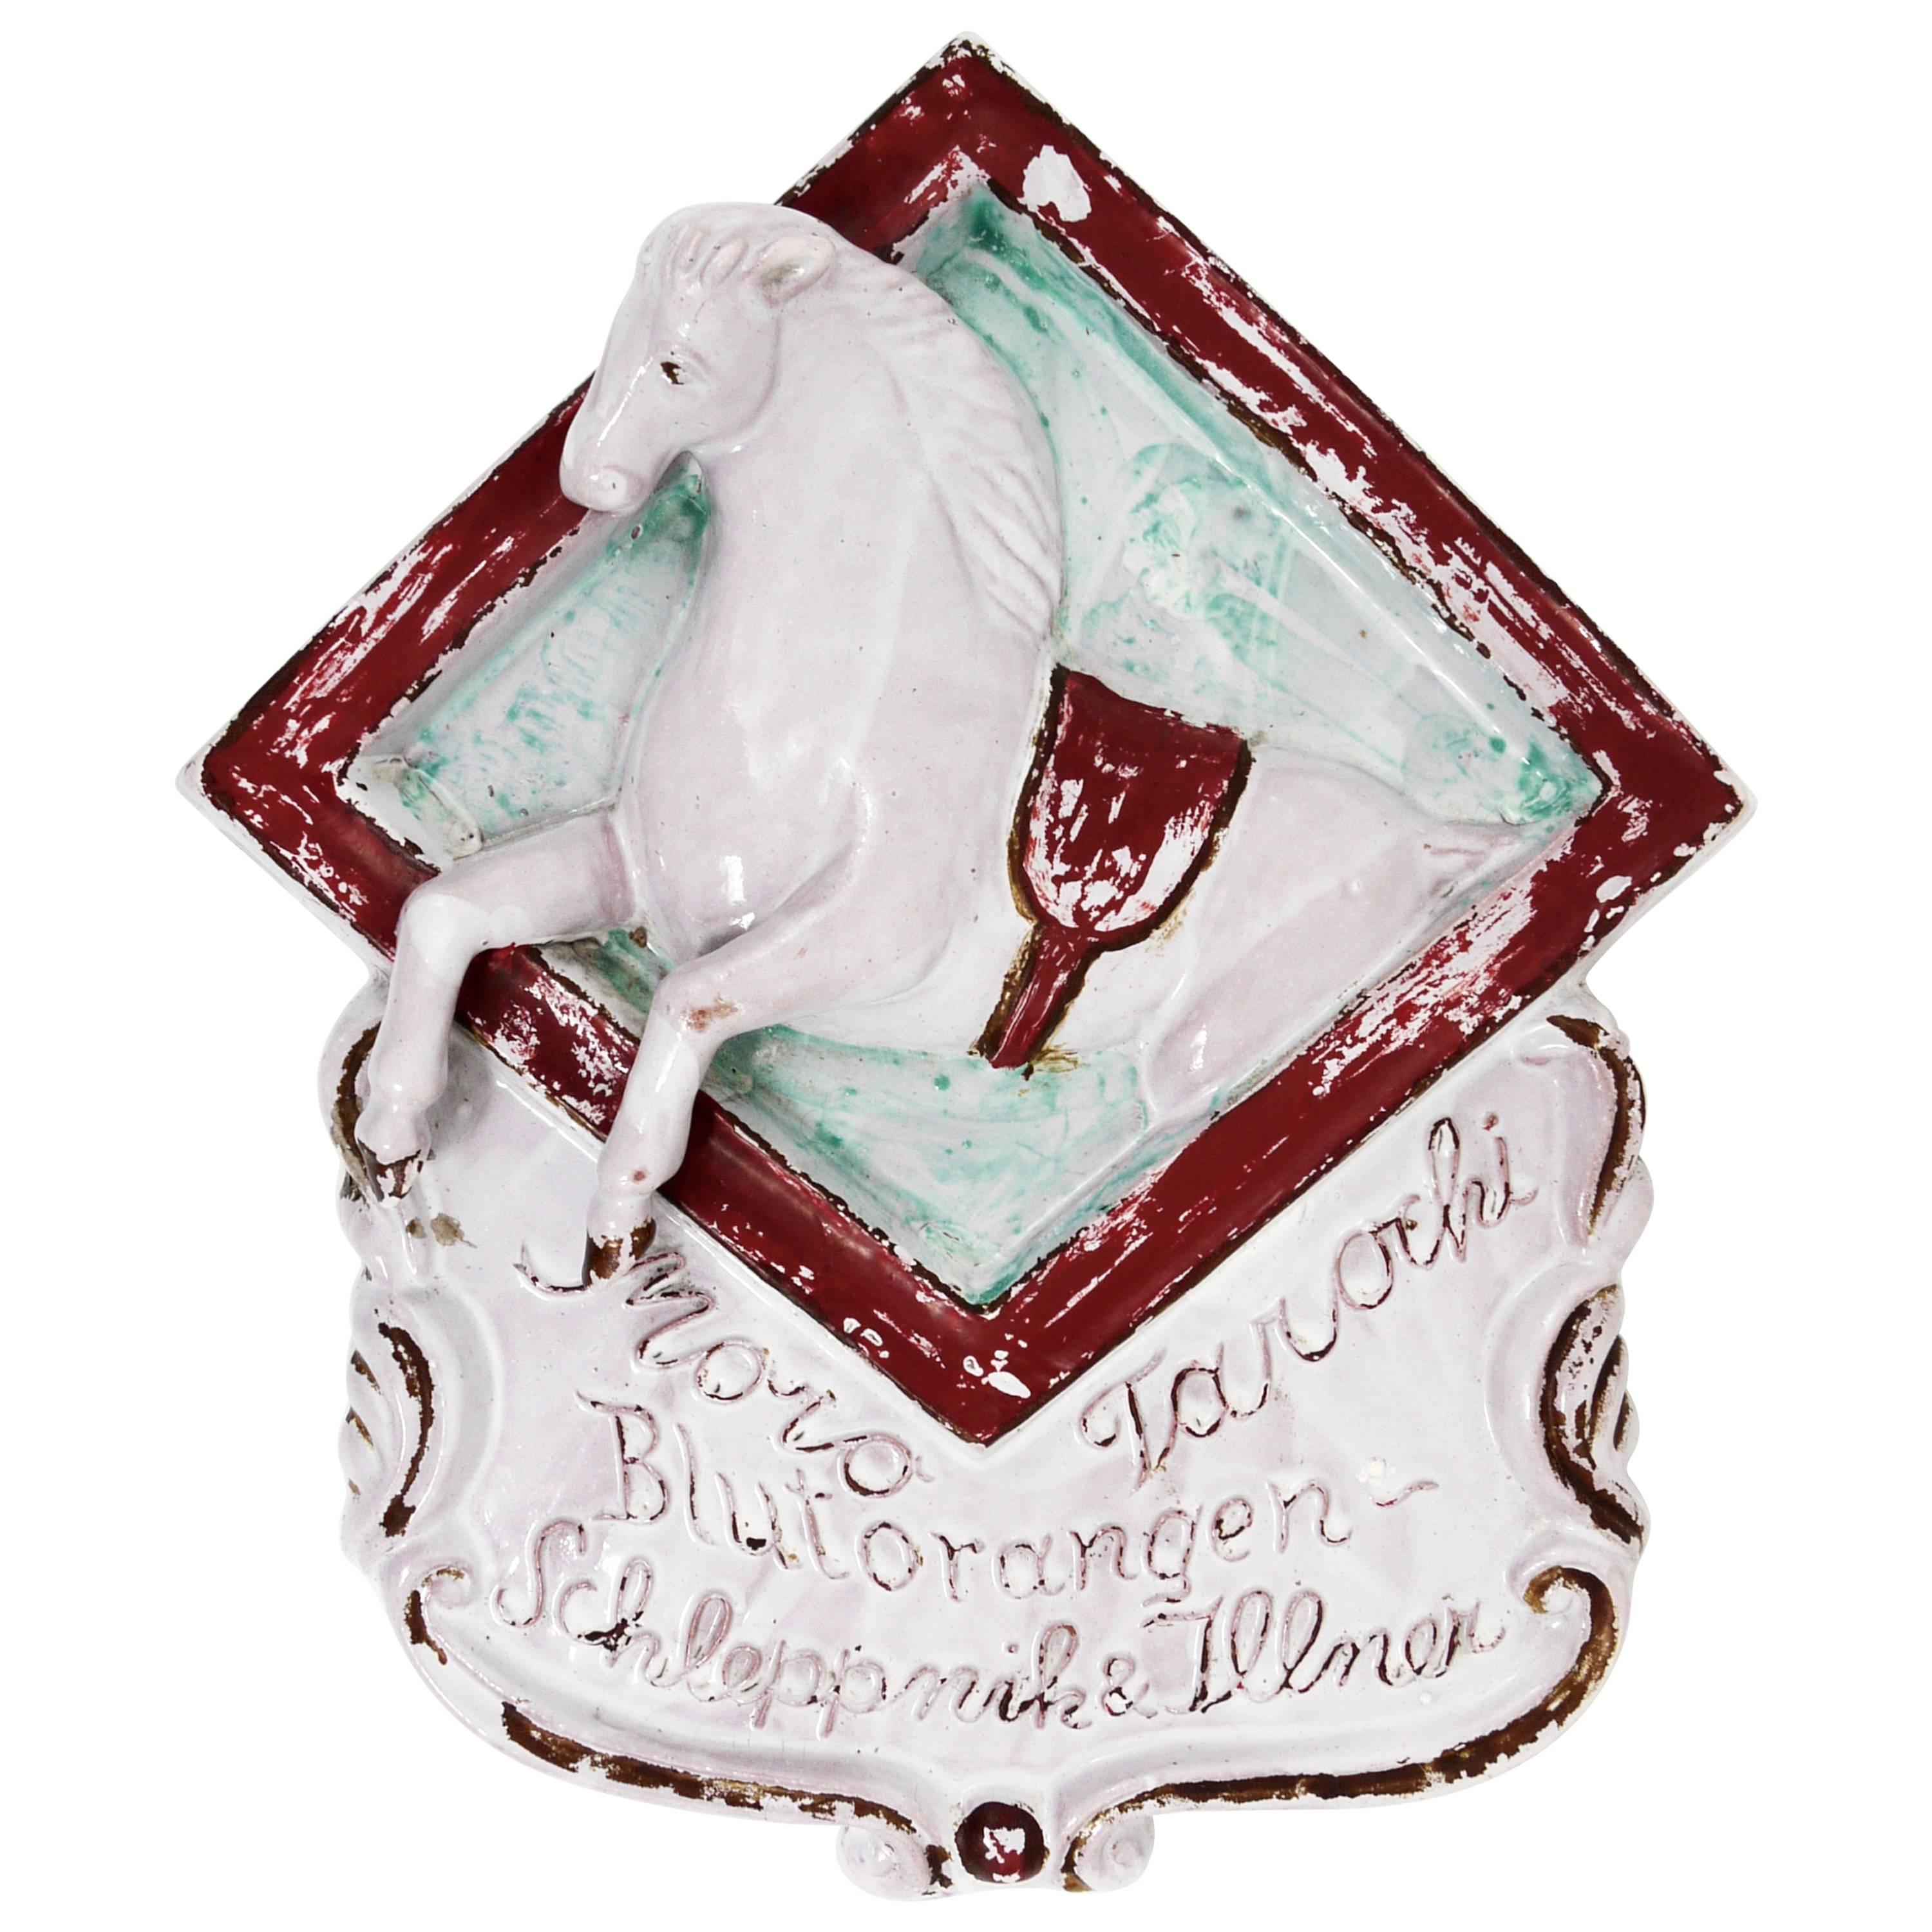 Old Advertising Sign for Blood Oranges Displaying a Horse, Pottery, Italy, 1920s